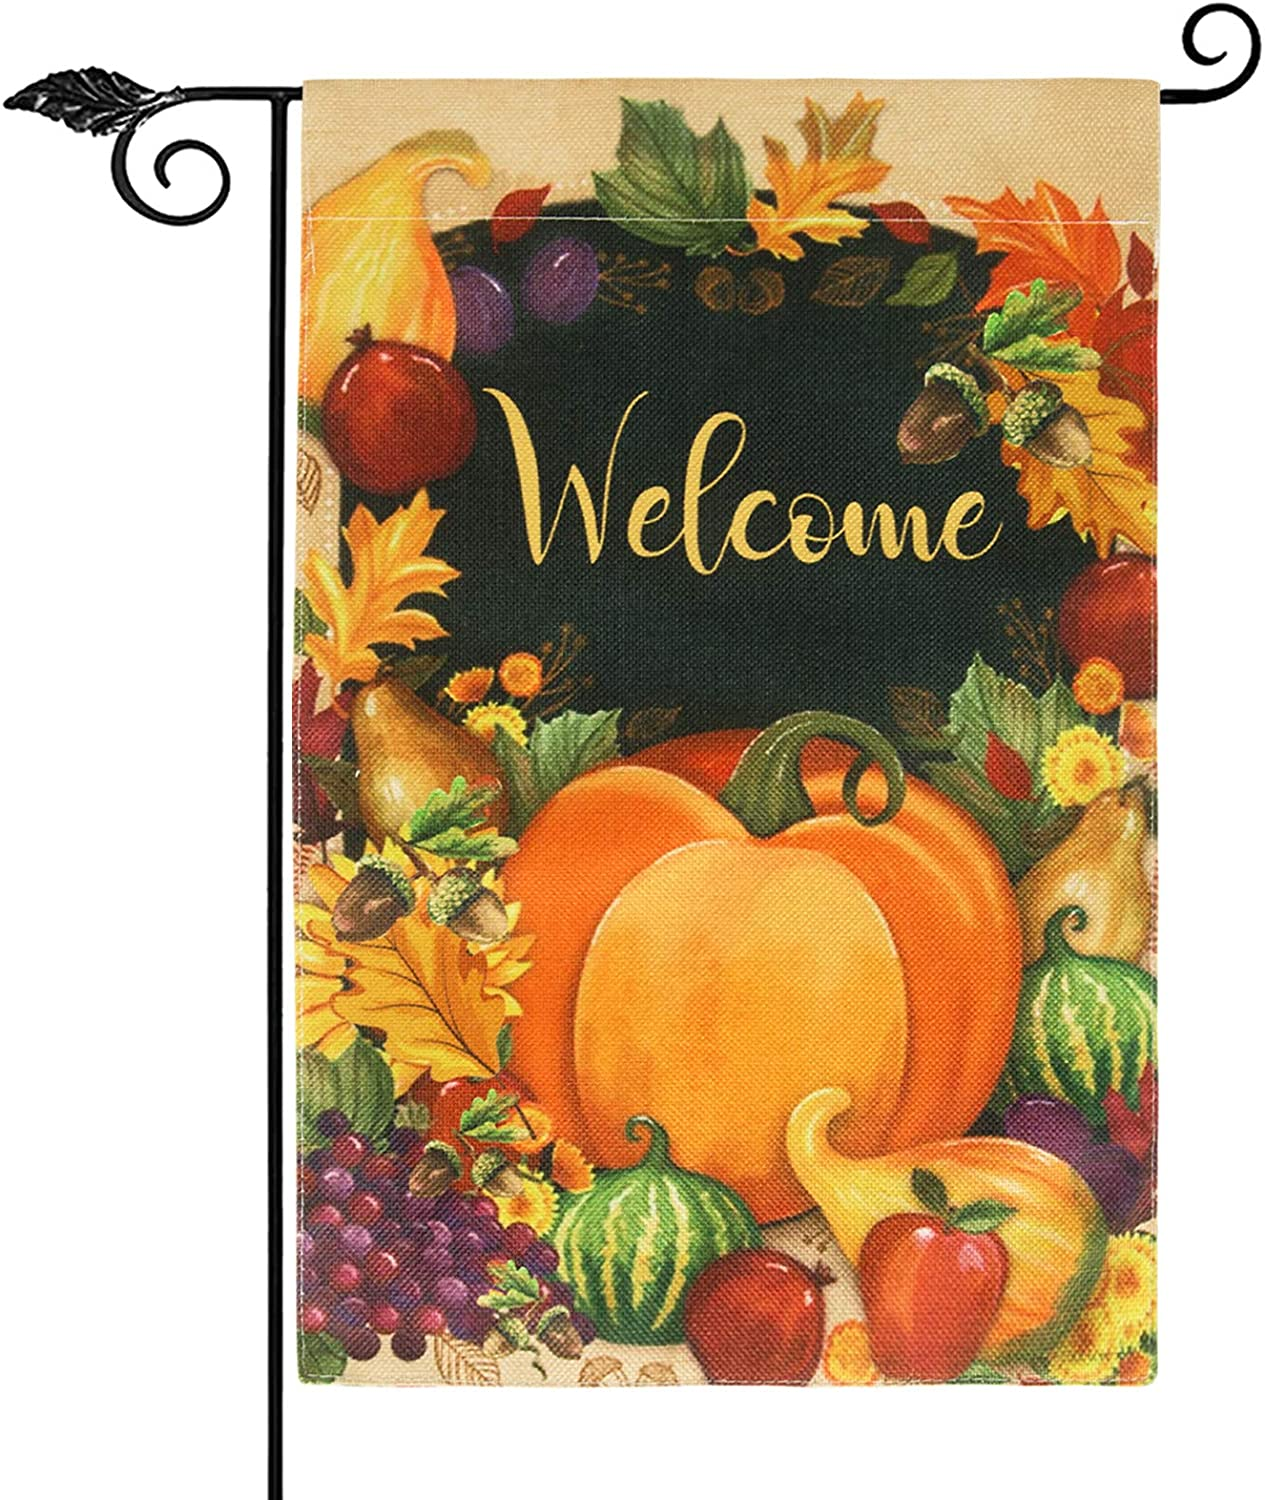 Thanksgiving Garden Flag12.5 x 18 Inch, Pumpkin Welcome Fall Garden Flag Vertical Double Sided Burlap House Flag, Autumn Leaves Harvest Yard Decorations Farmhouse Outdoor Thanksgiving Decor